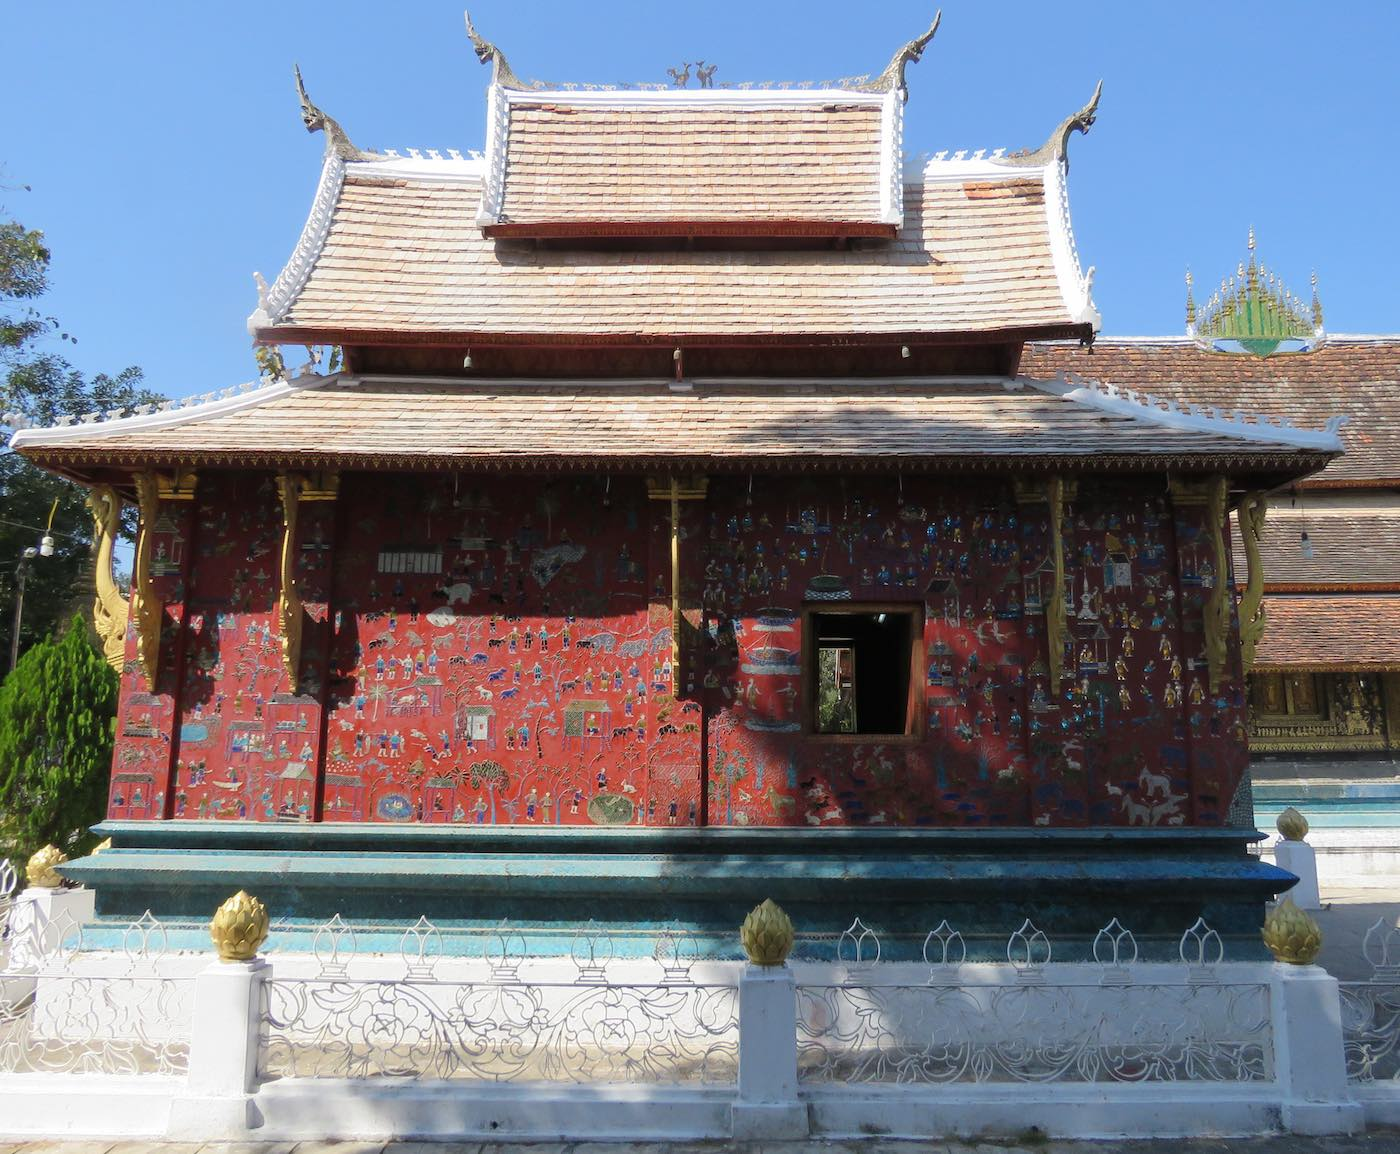 Wat Xieng Thong temple building with mosaic covered exterior walls